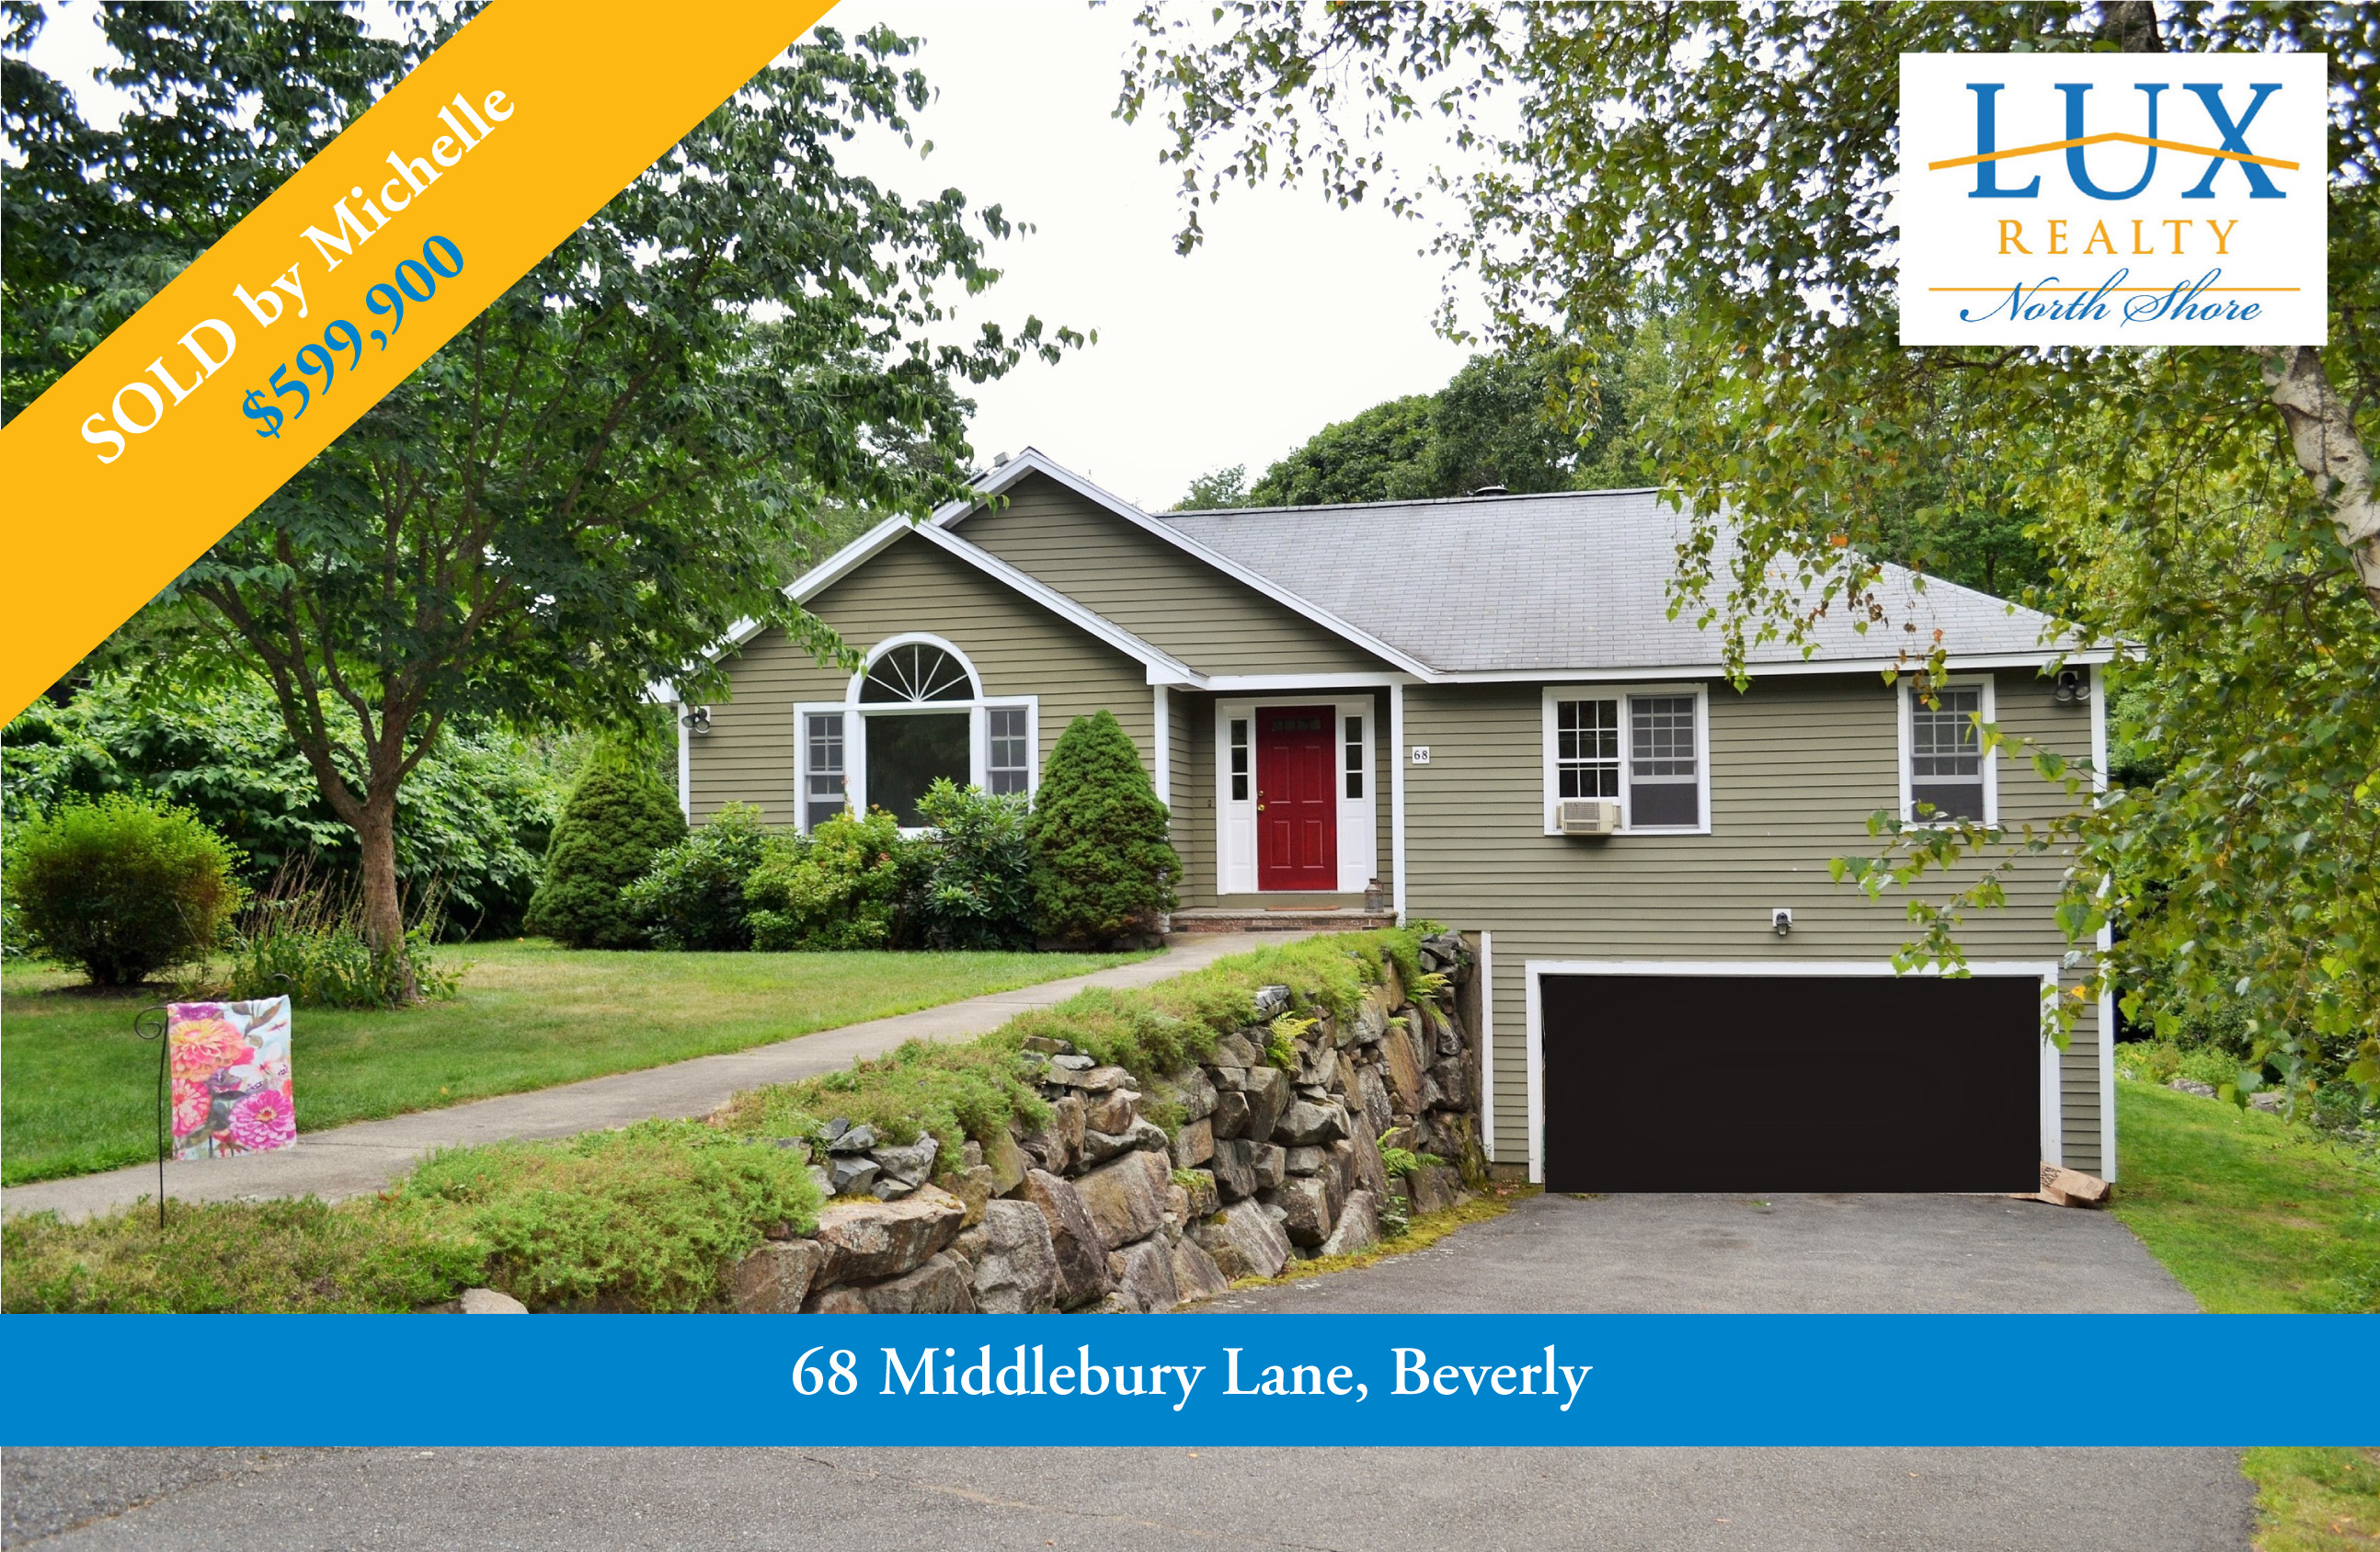 middlebury lane beverly ma